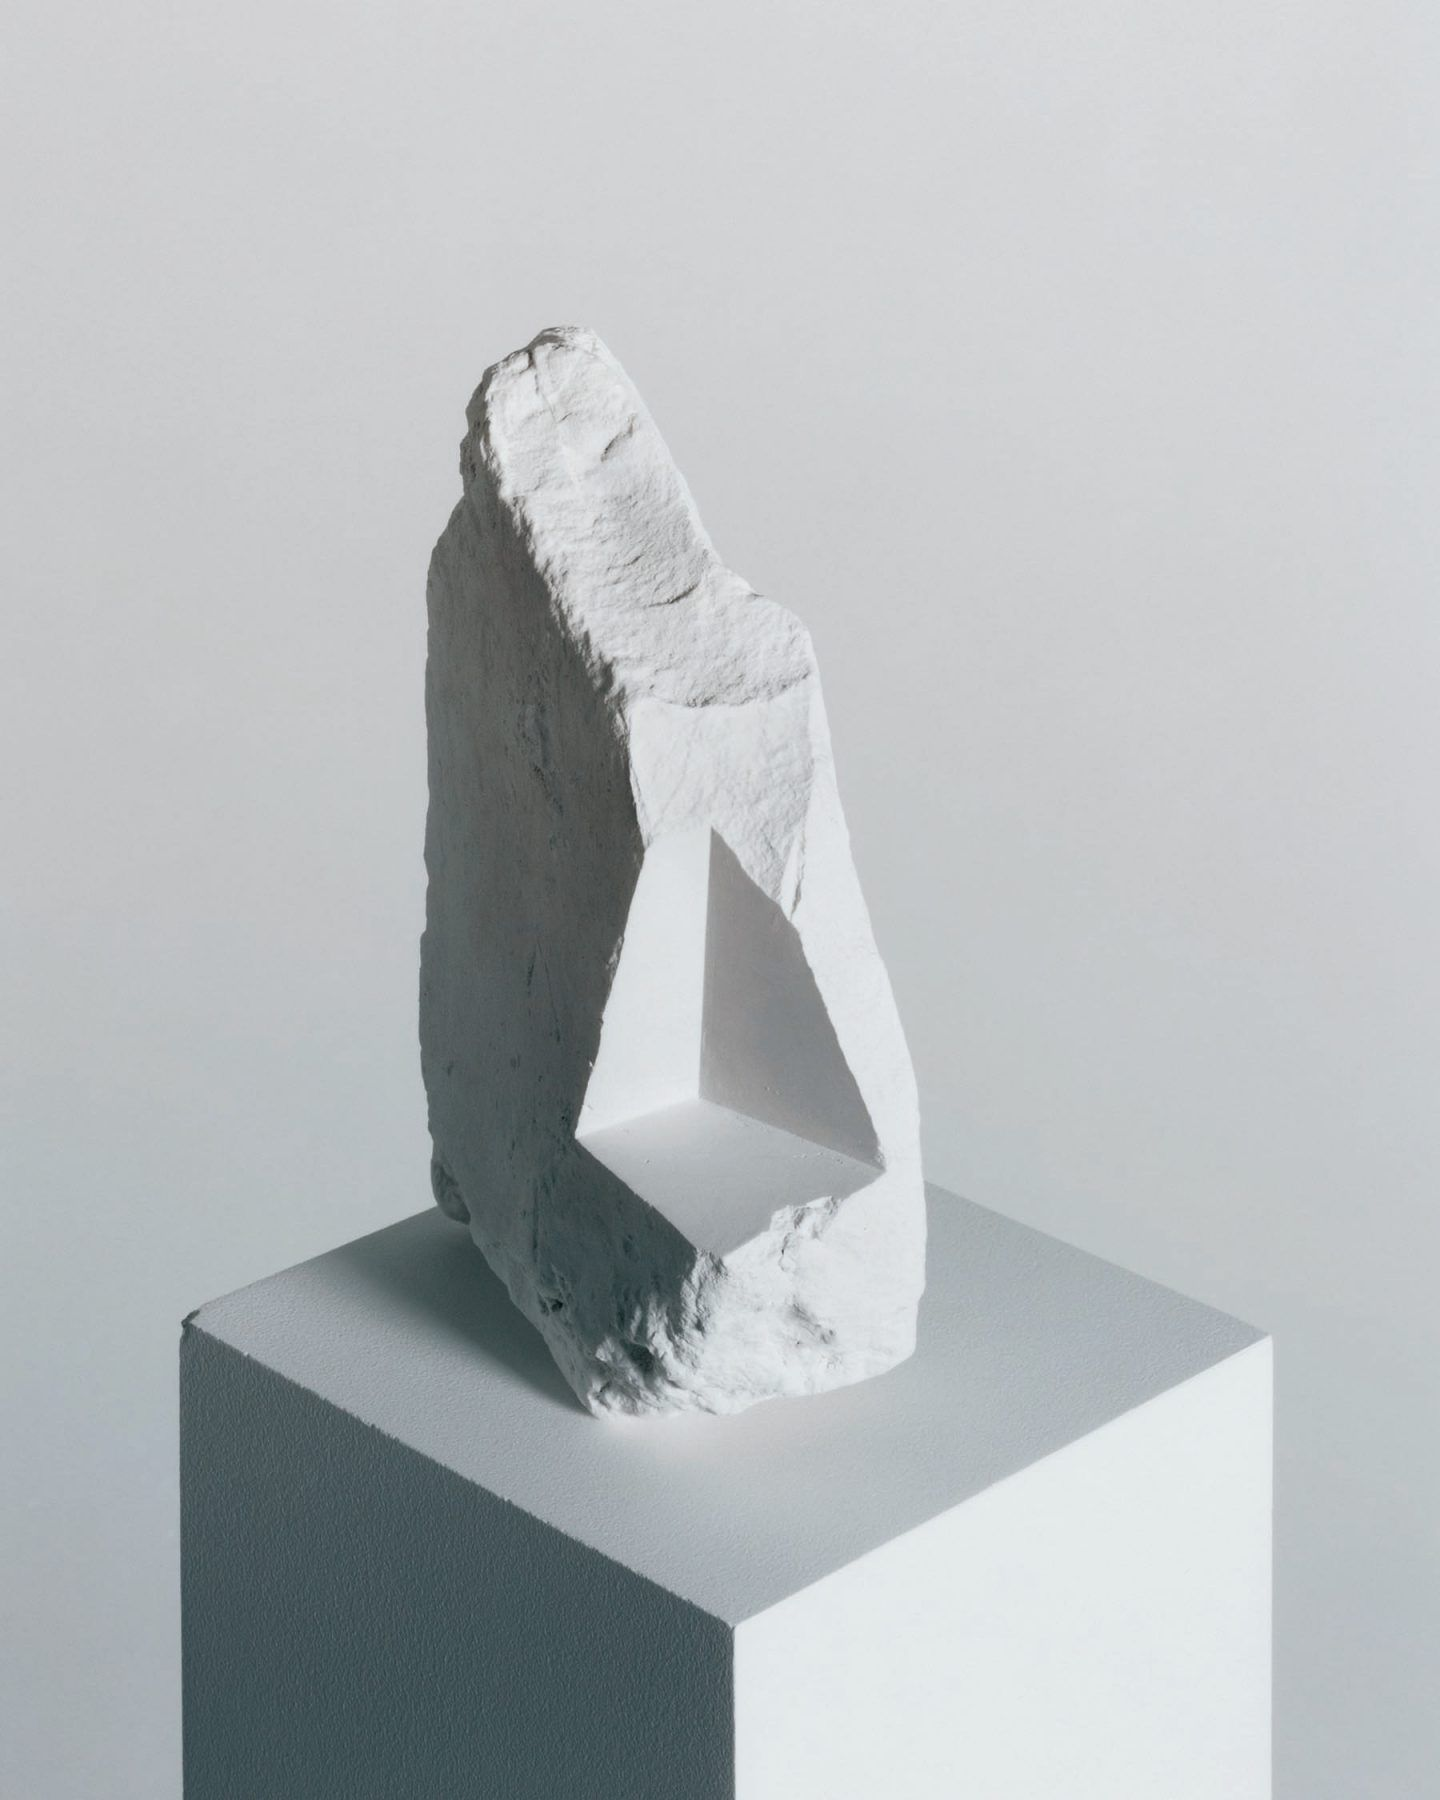 IGNANT-Photography-Darren-Harvey-Regan-The-Erratics-4.1